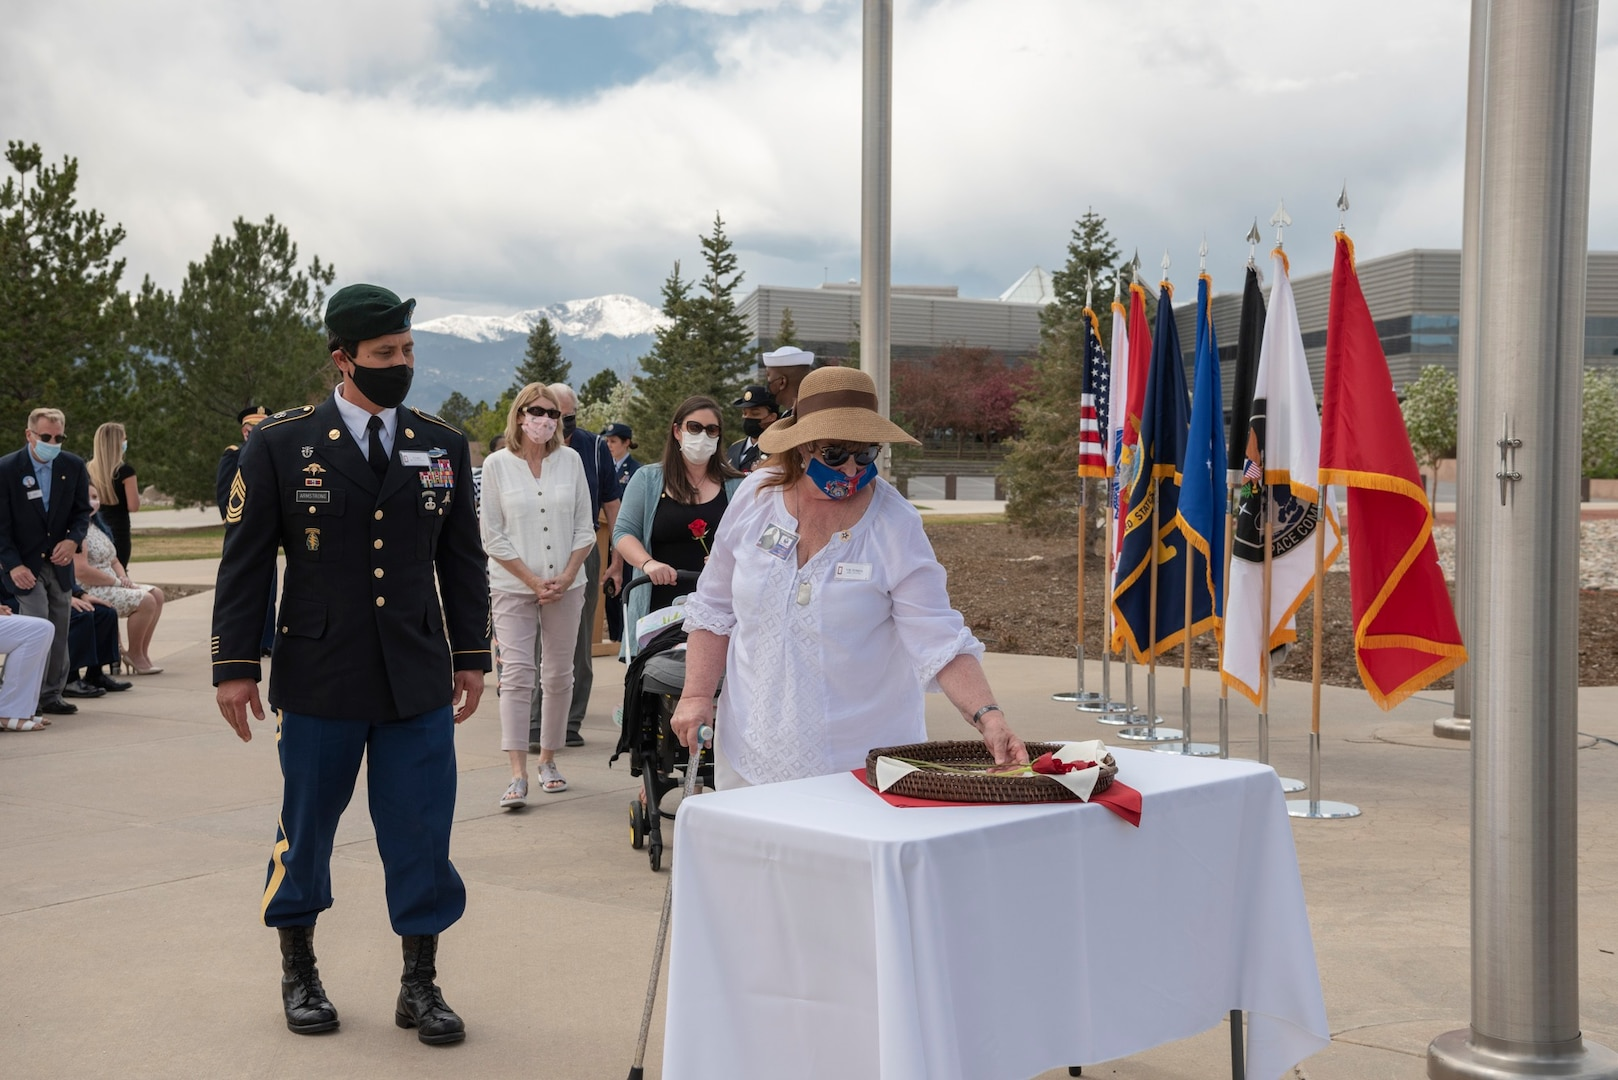 Gold Star families from Colorado's Front Range place remembrance roses at the base of the flagpole May 7 during a Gold Star flag raising ceremony at Peterson Air Force Base, Colorado. Each rose represented a fallen service member.